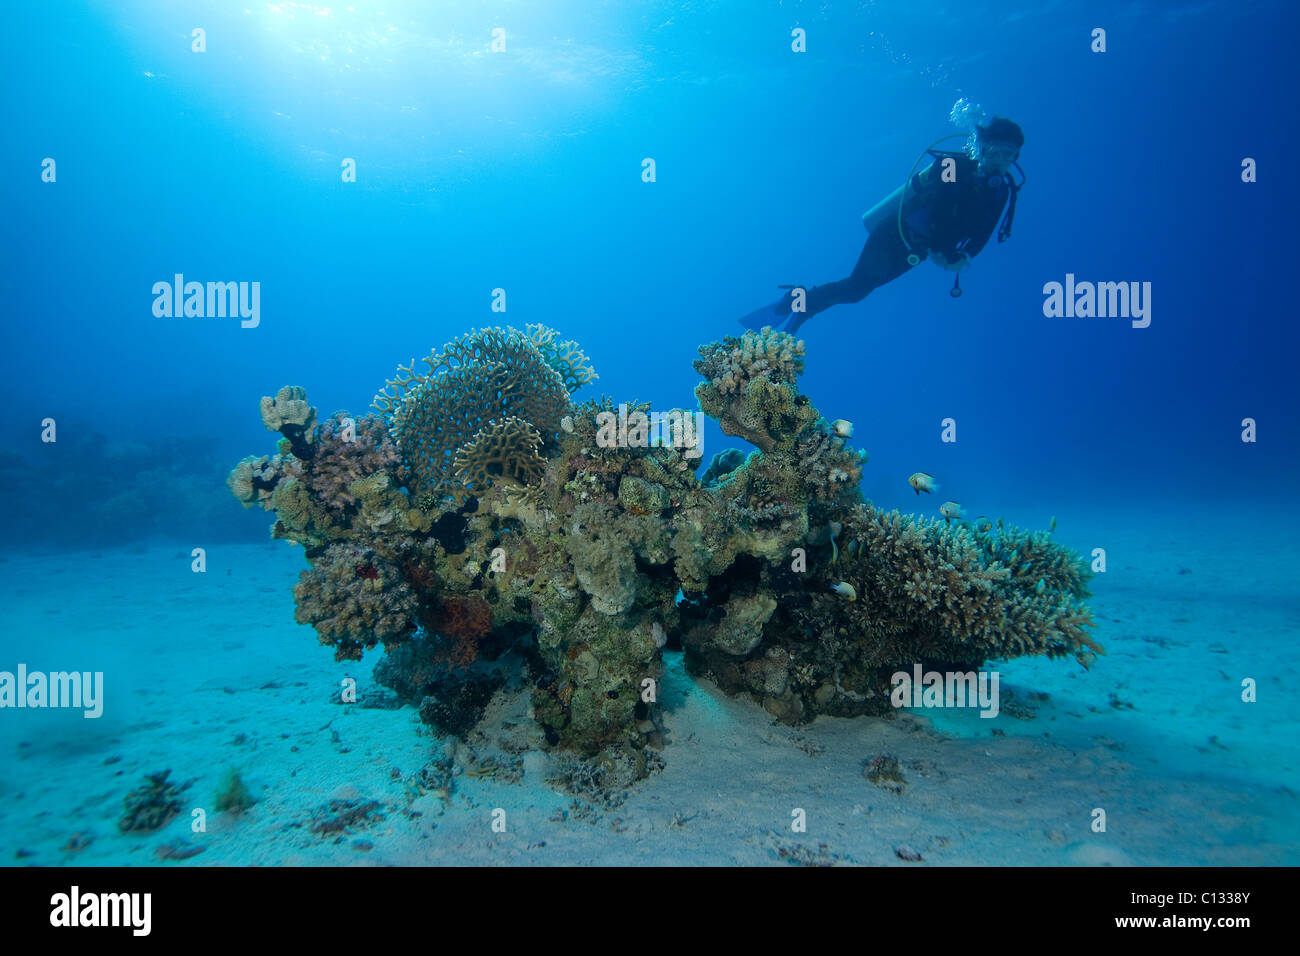 Coral bommie and diver, Stingray City, Sharm El Sheikh, Red Sea - Stock Image